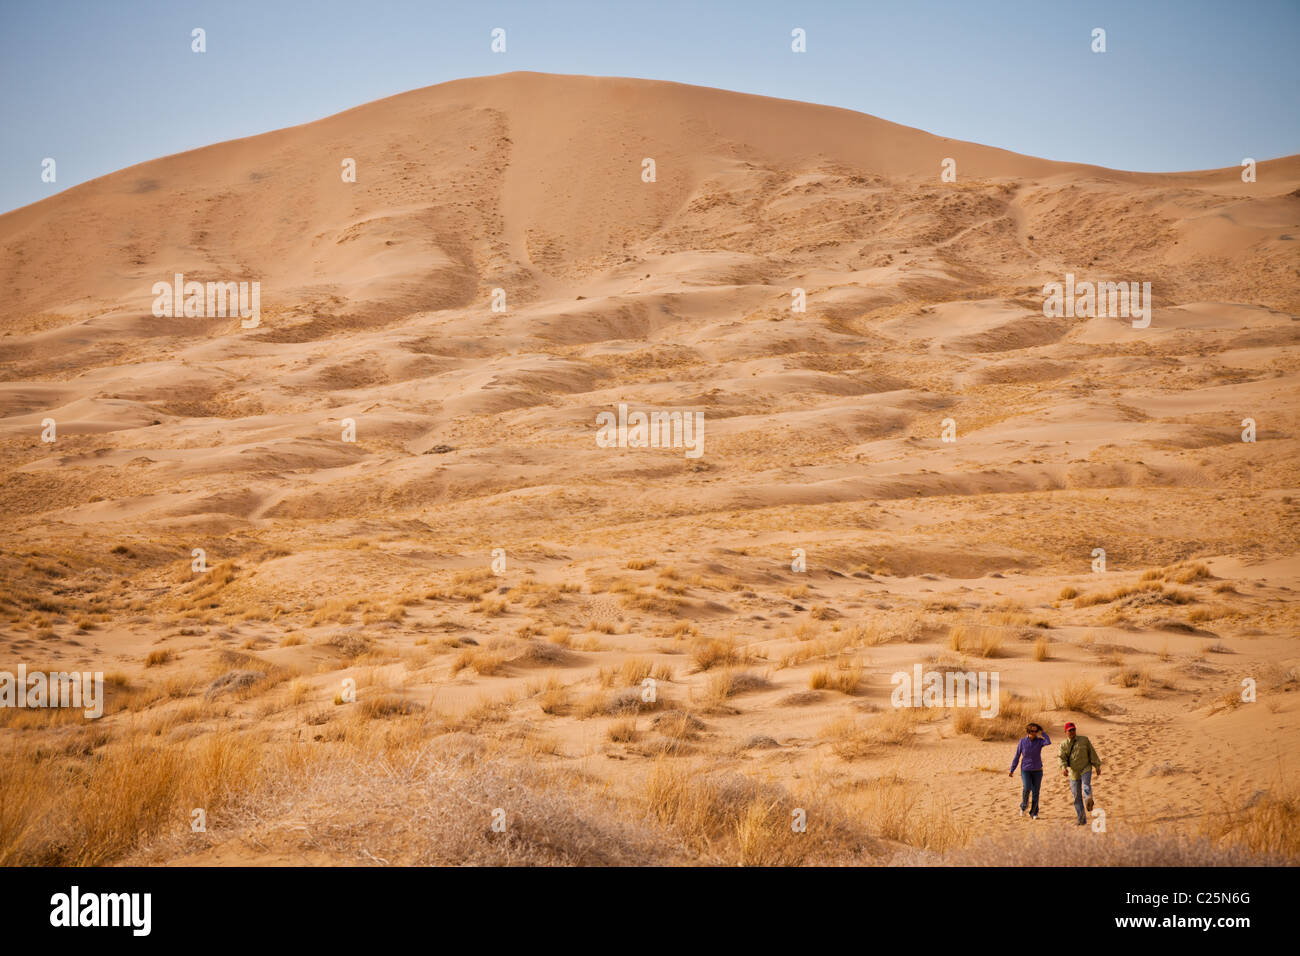 Kelso Dunes in the Mojave Desert in the Mojave National Preserve, Kelso, CA - Stock Image